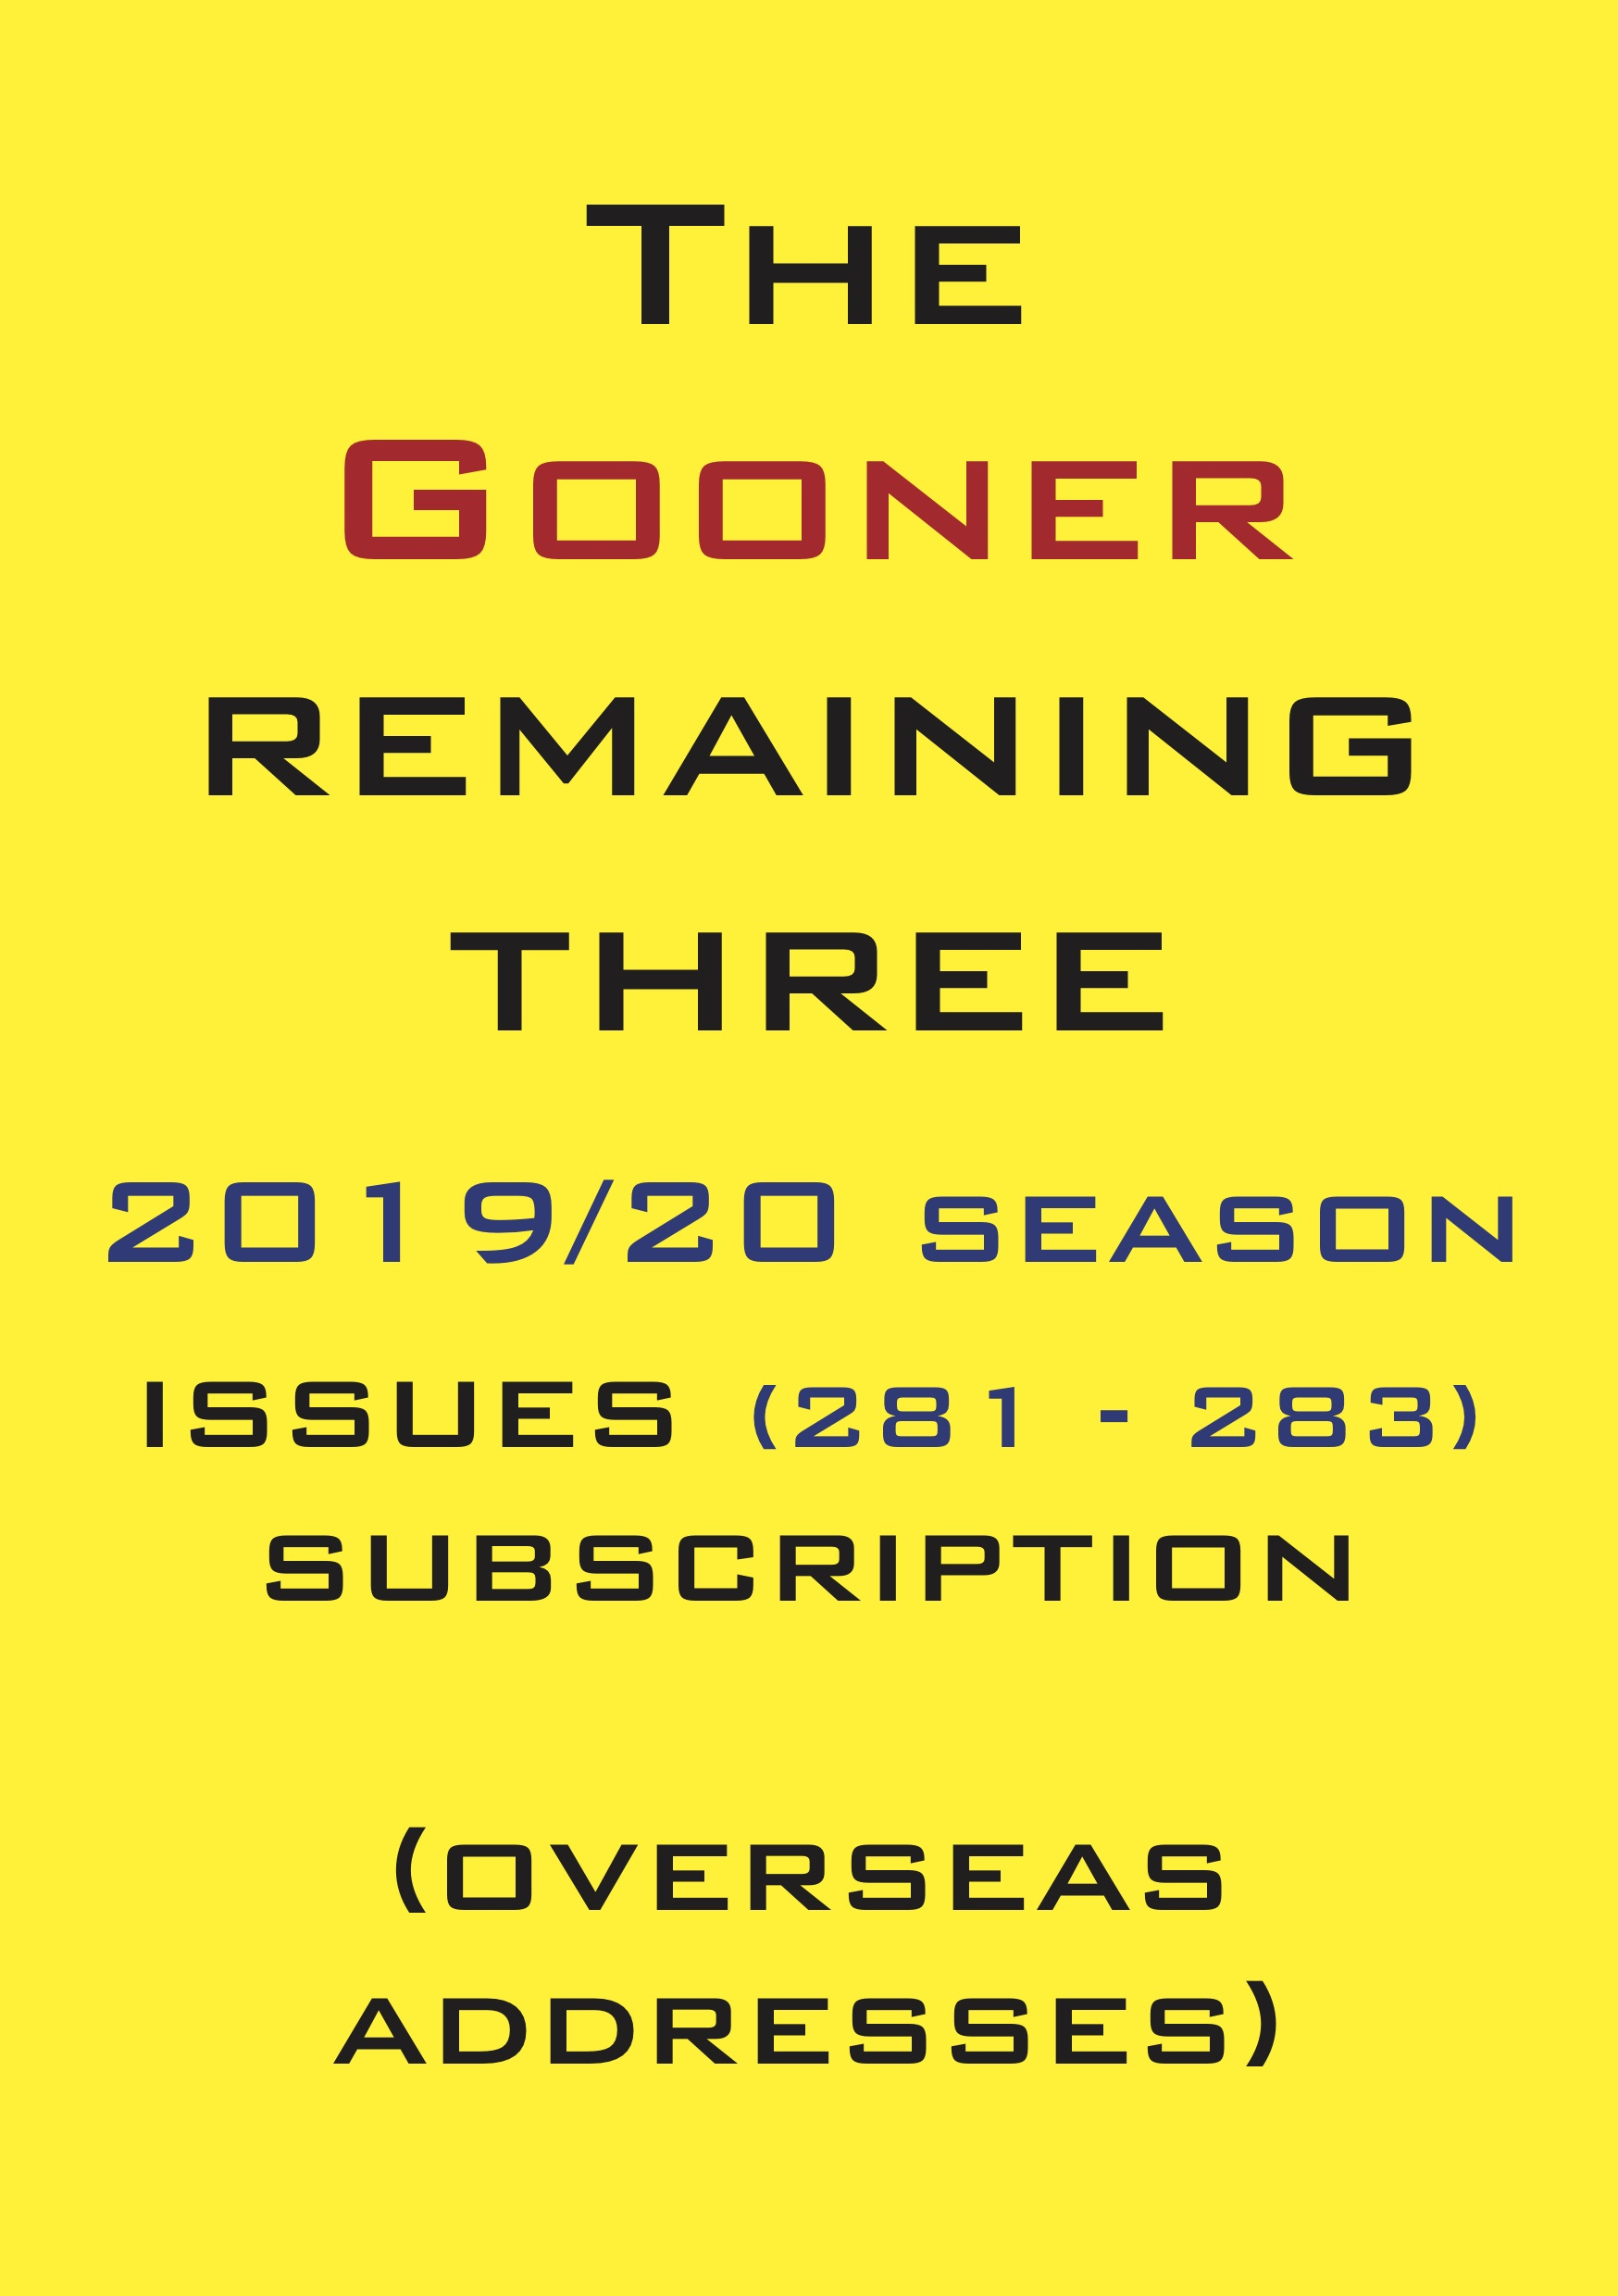 1d. The Gooner! - 3 remaining 2019/20 issues subscription Abroad